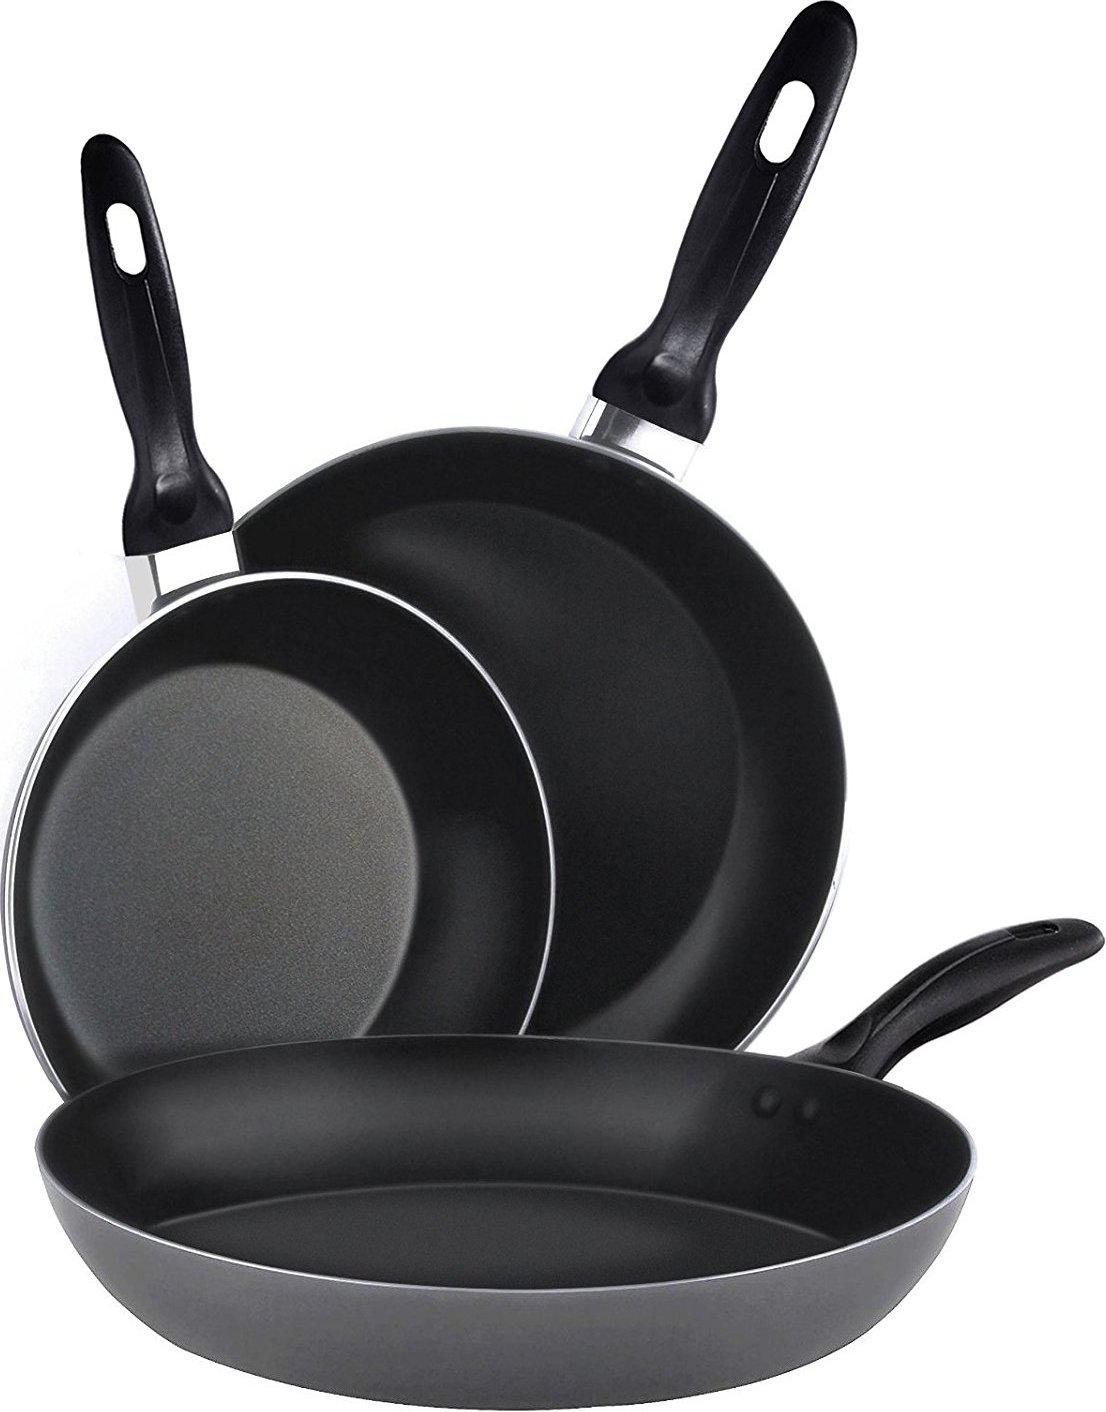 Amazoncom Aluminum Nonstick Frying Pan Set 3Piece 8 Inches